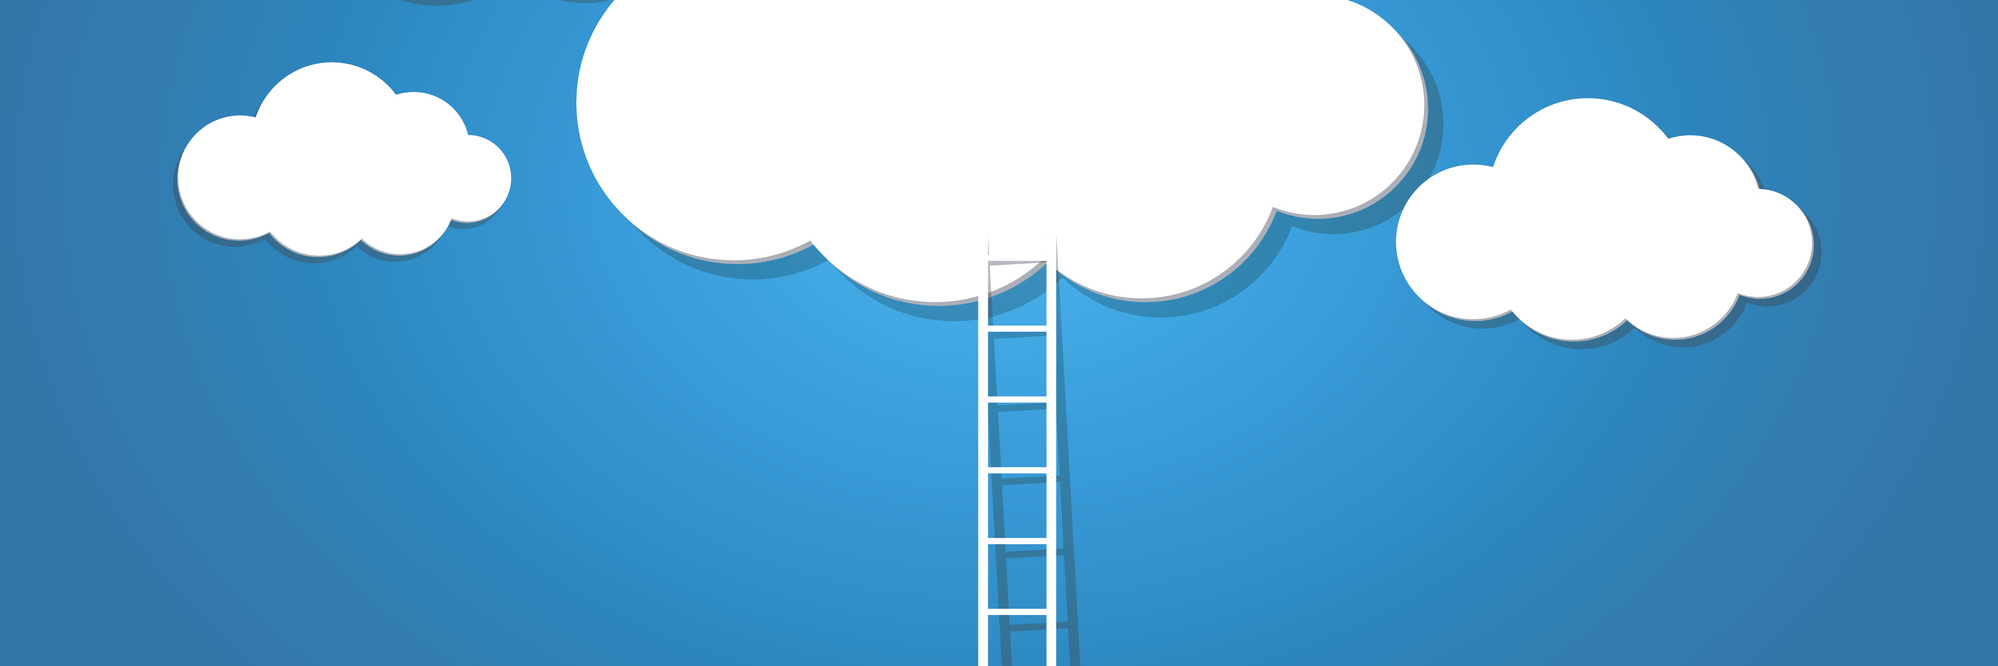 A ladder leading to the clouds on a blue background.